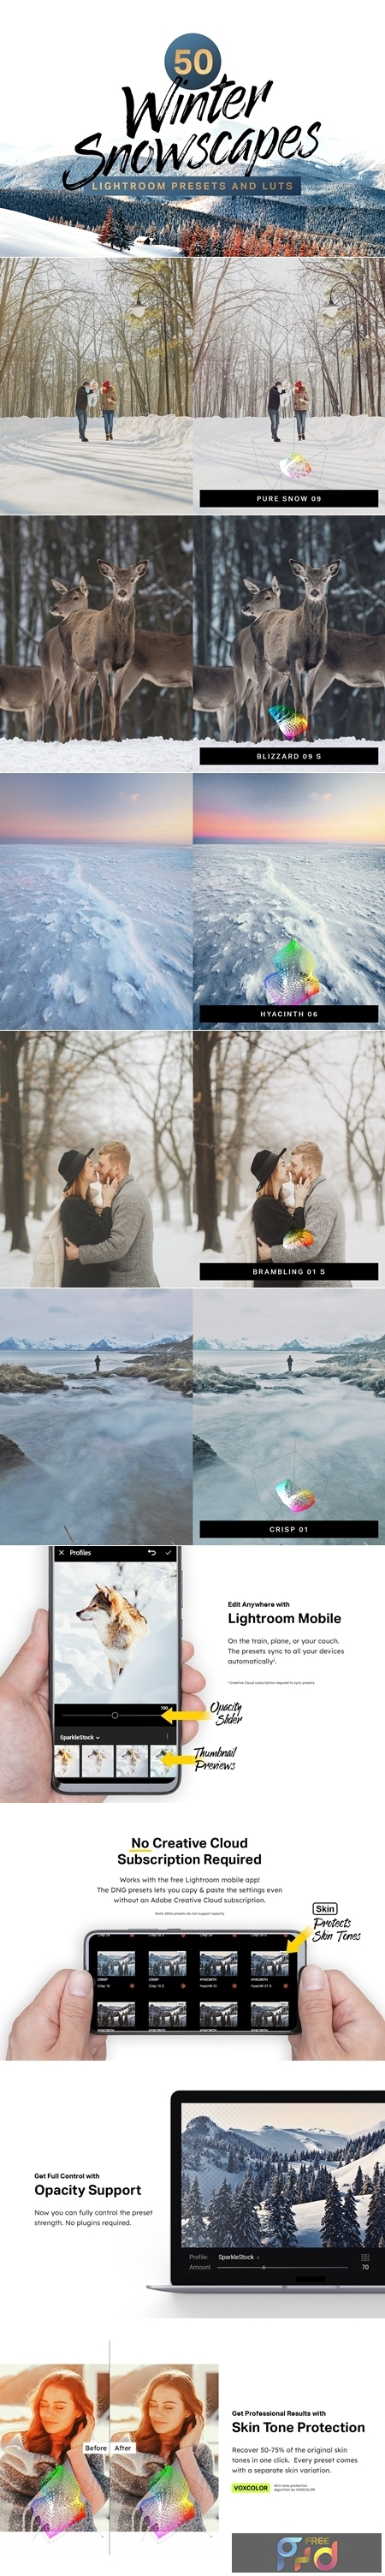 50 Winter Lightroom Presets and LUTs 4285934 1